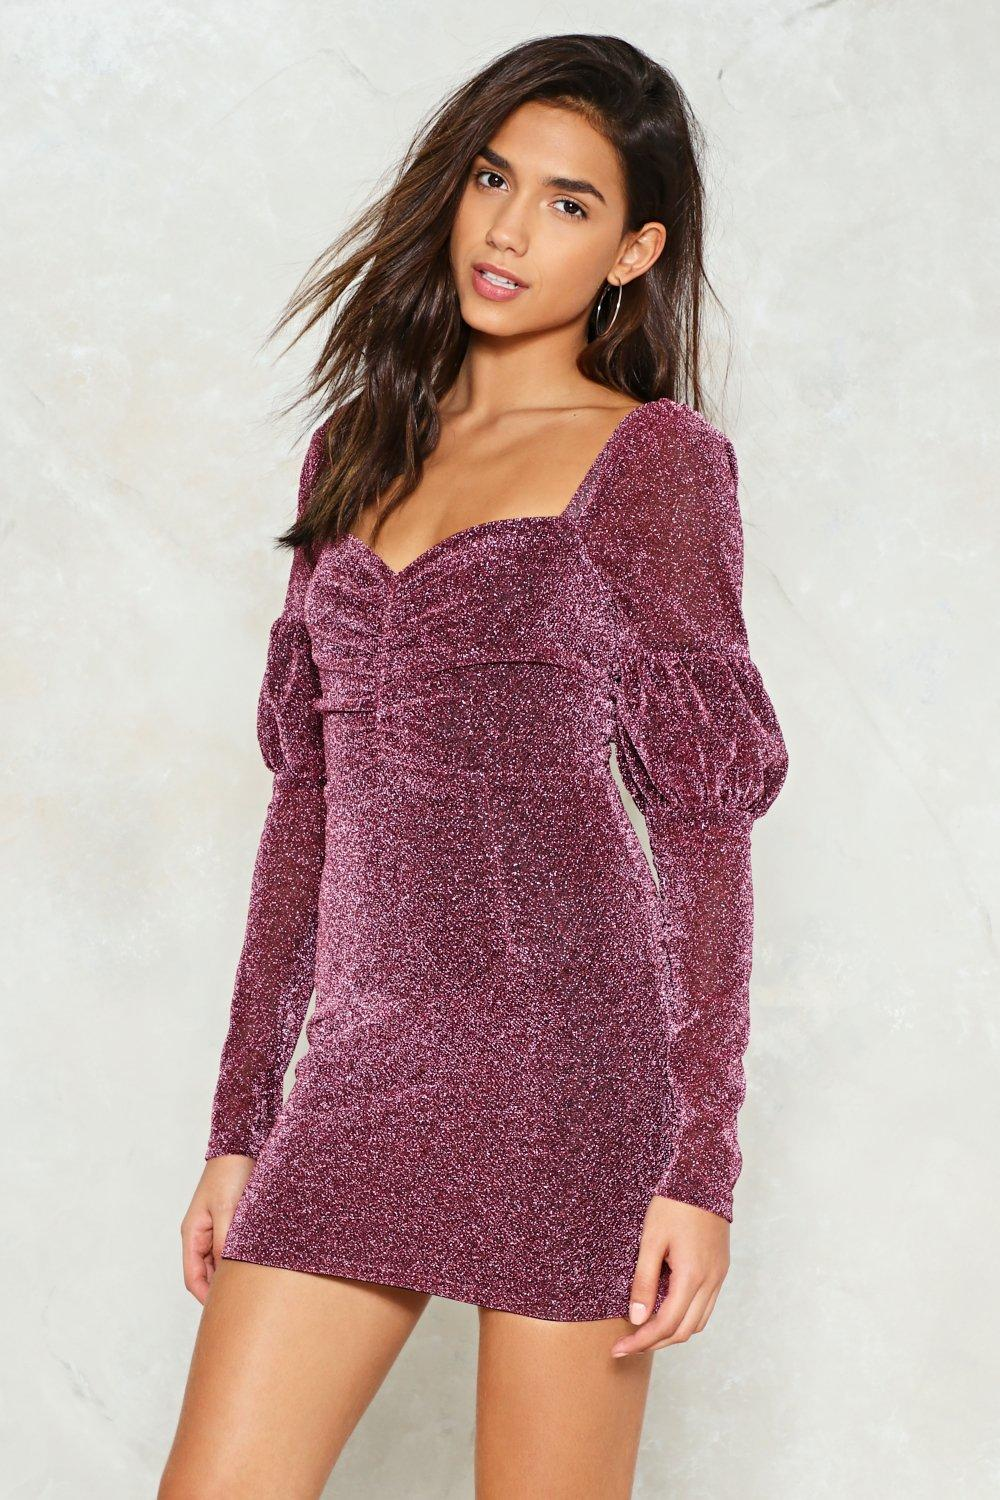 More More More Glitter Dress | Shop Clothes at Nasty Gal!